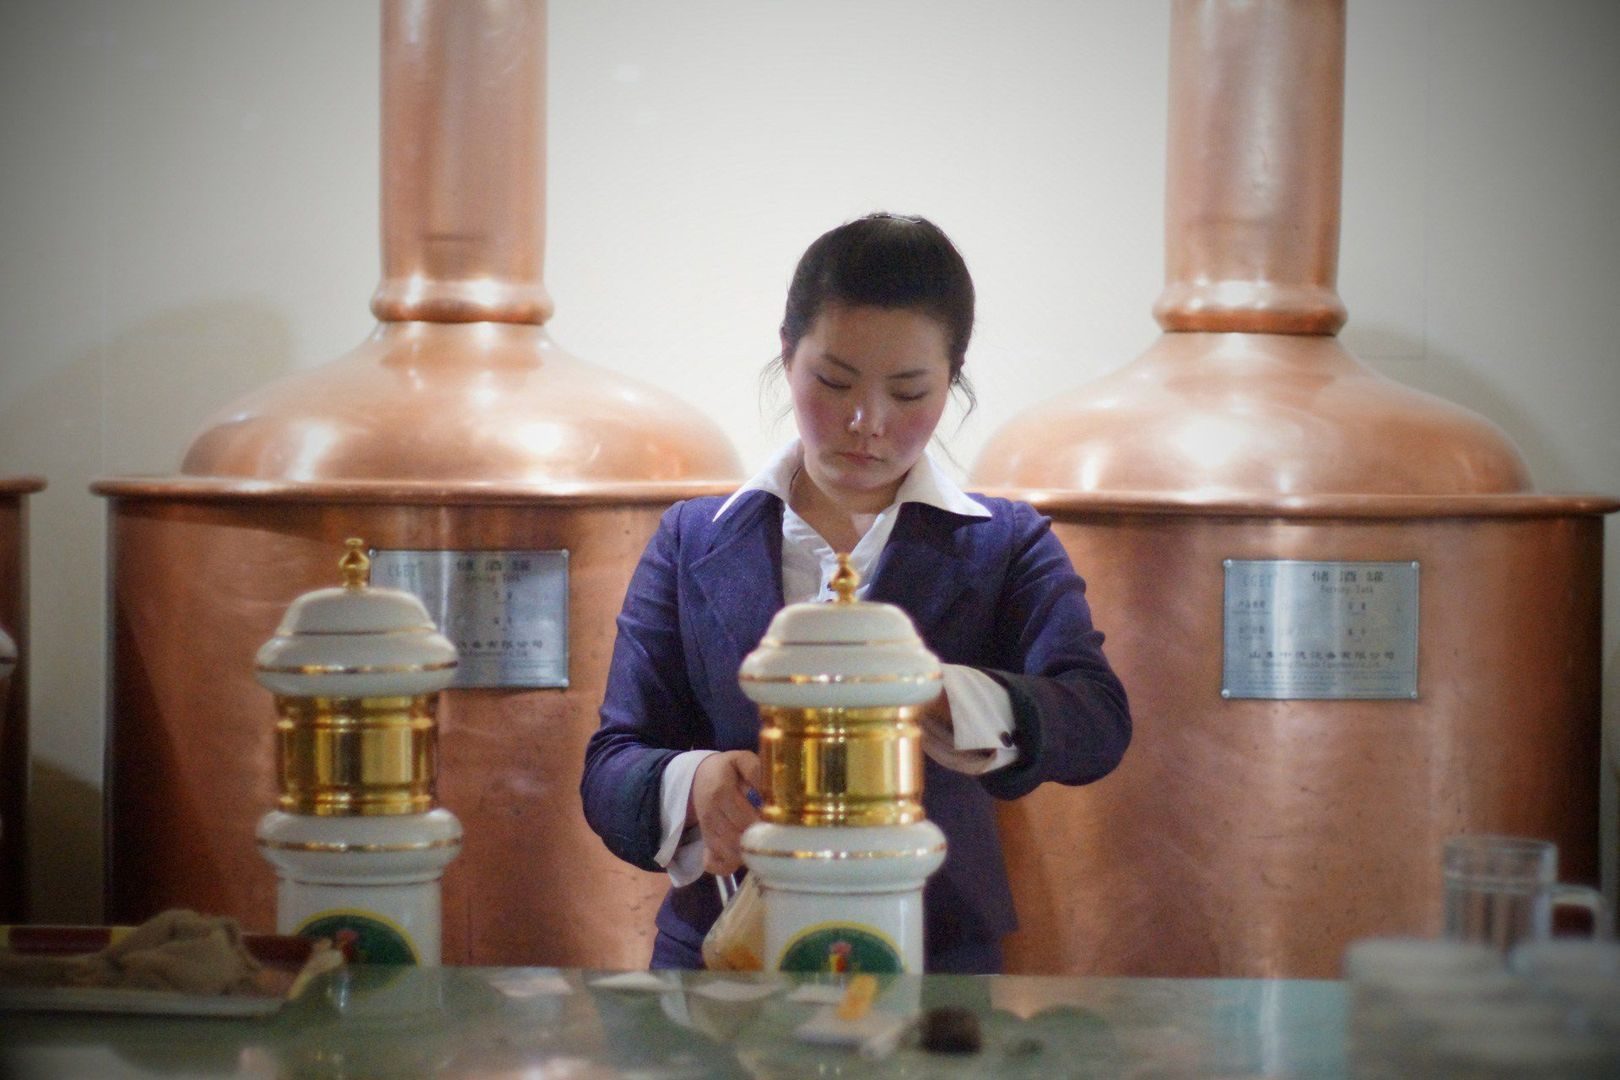 How about crisp 'Kim Jong-Ale' - North Korea has a surprising microbrewery culture